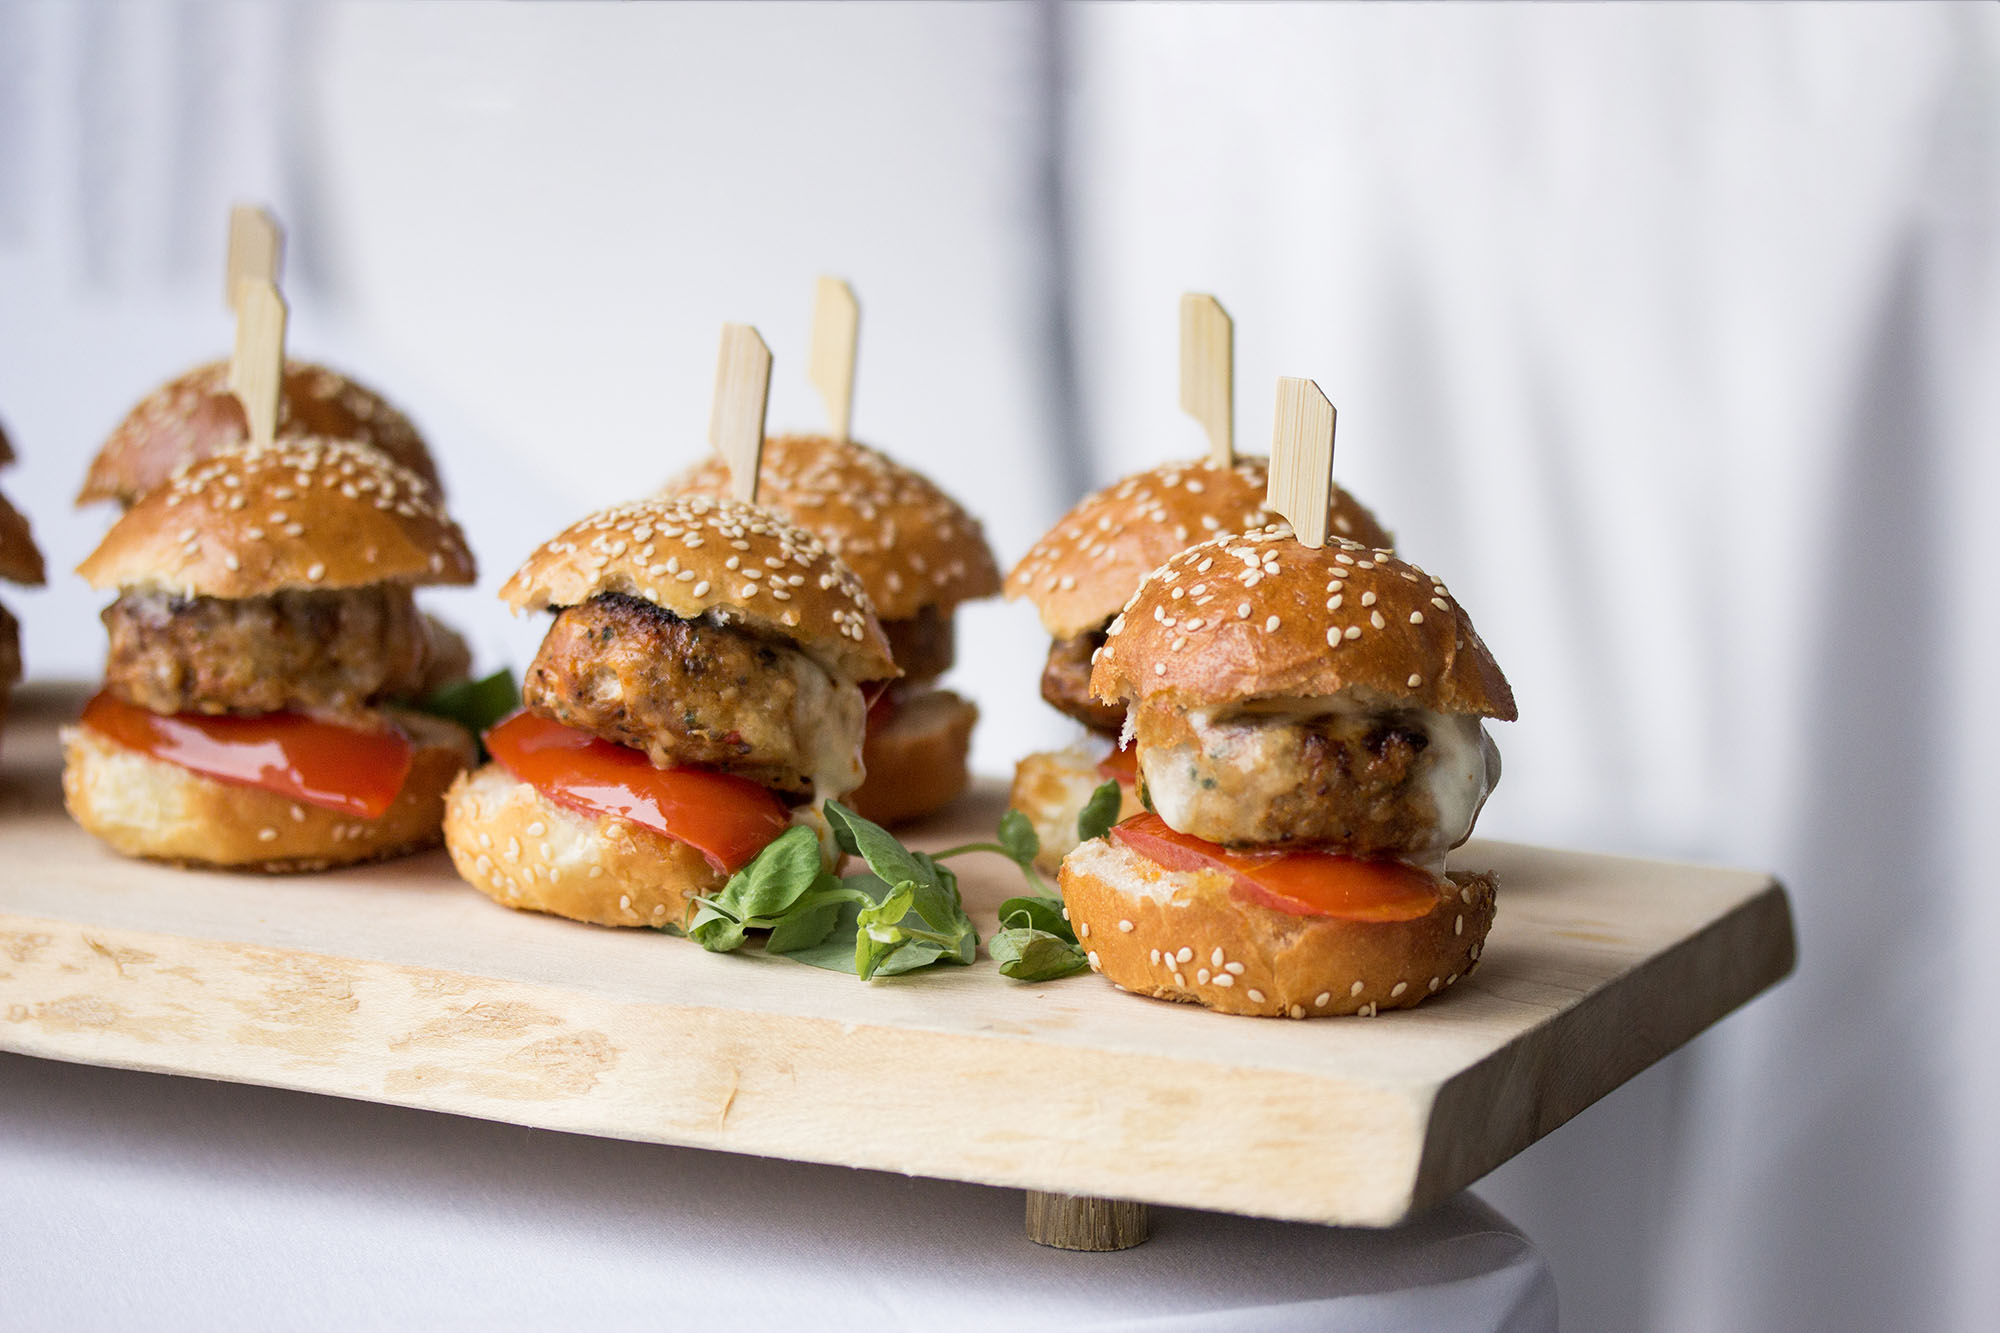 An assortment of sliders sitting on a wooden board